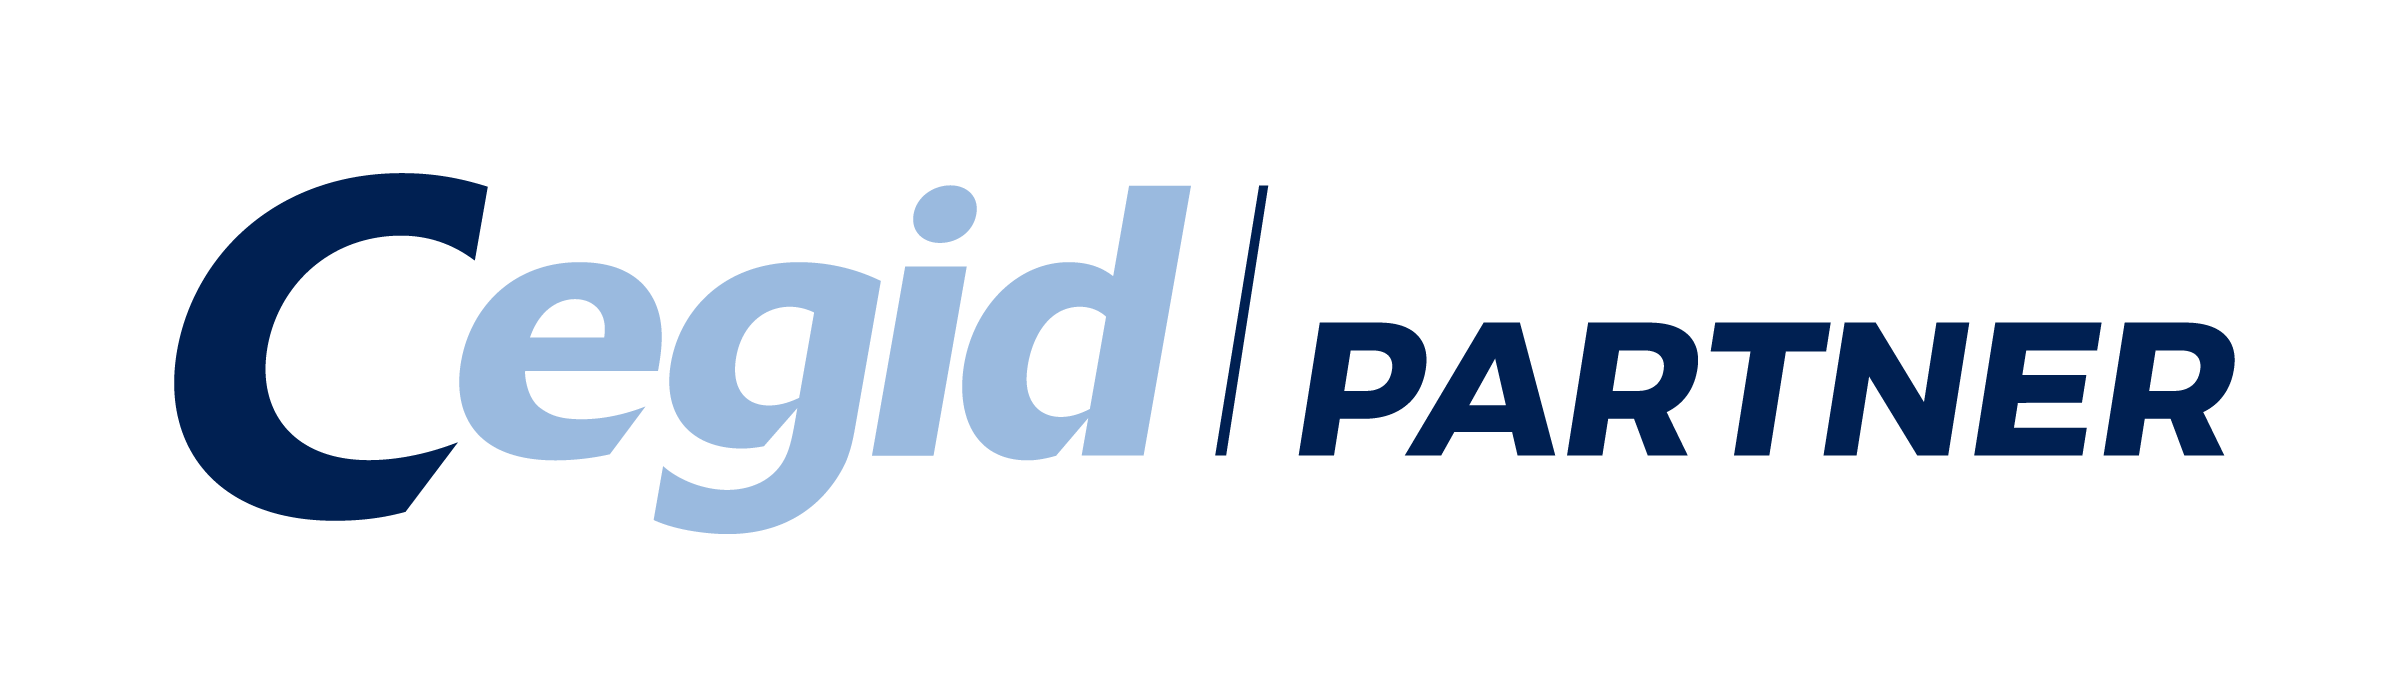 CEGID Partner